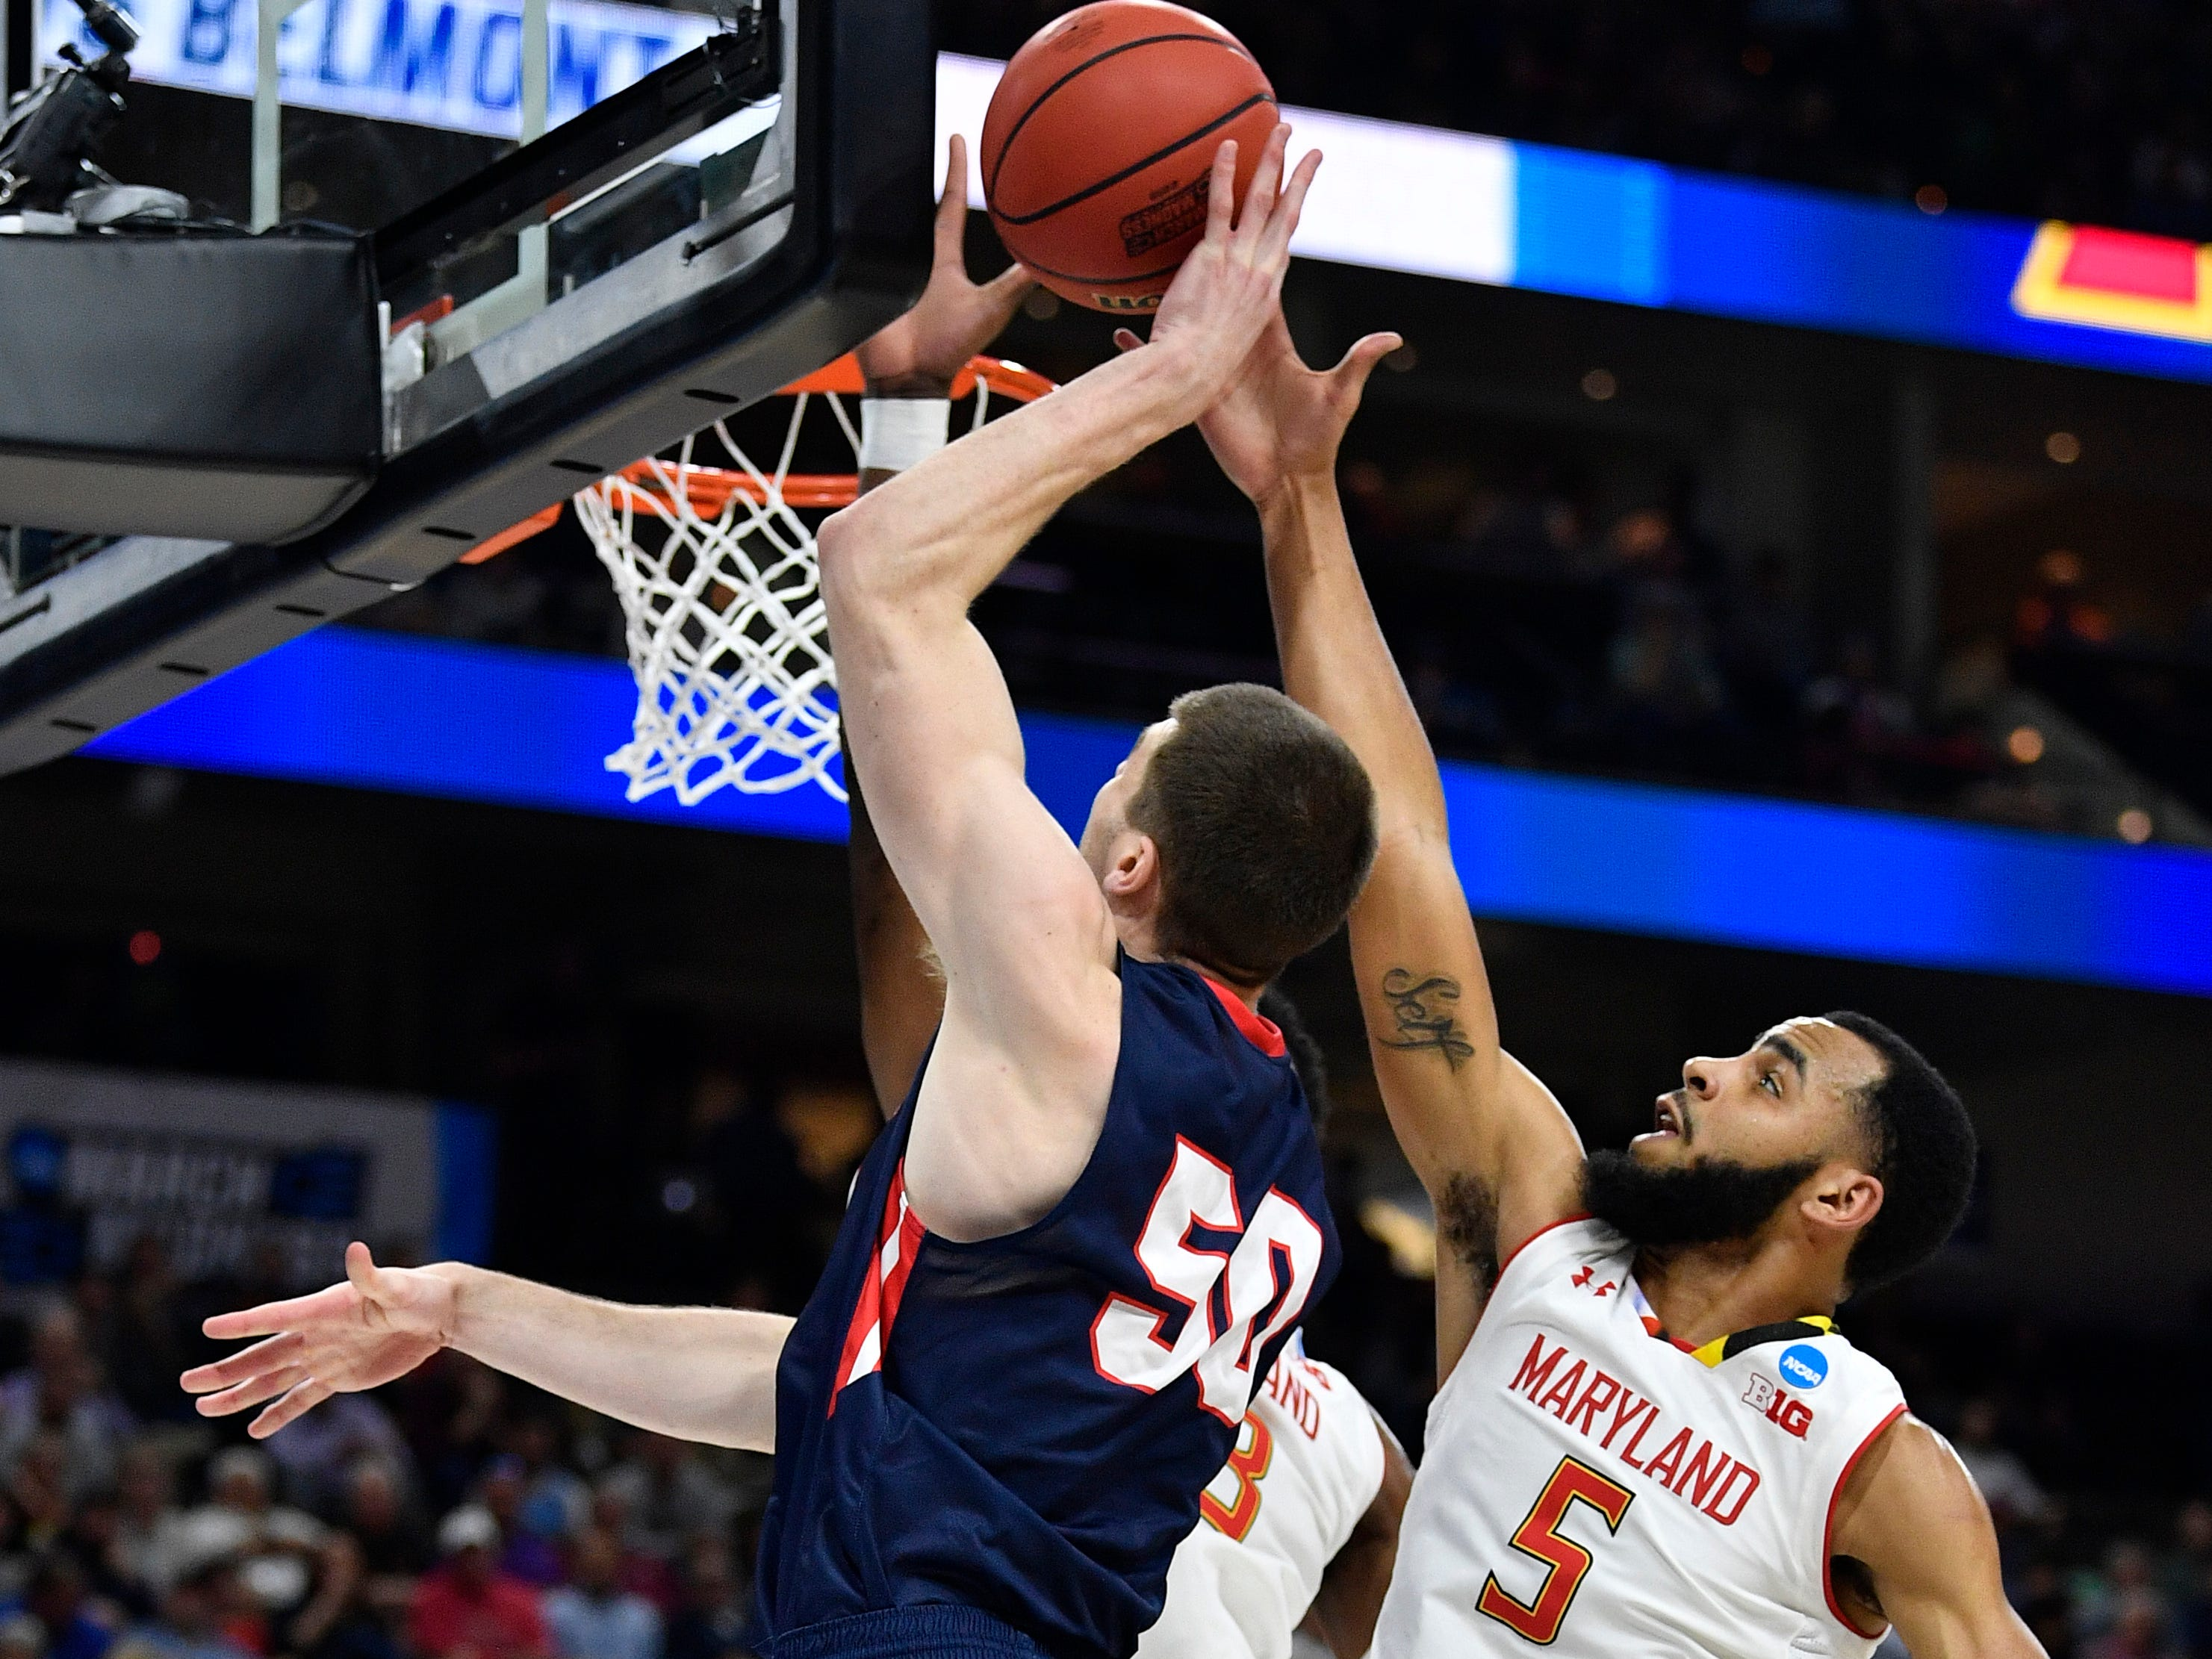 Belmont center Seth Adelsperger (50) tries to shoot past Maryland guard Eric Ayala (5) during the first half of the first-round NCAA college basketball tournament game at VyStar Veterans Memorial Arena in Jacksonville, Fla., Thursday, March 21, 2019.